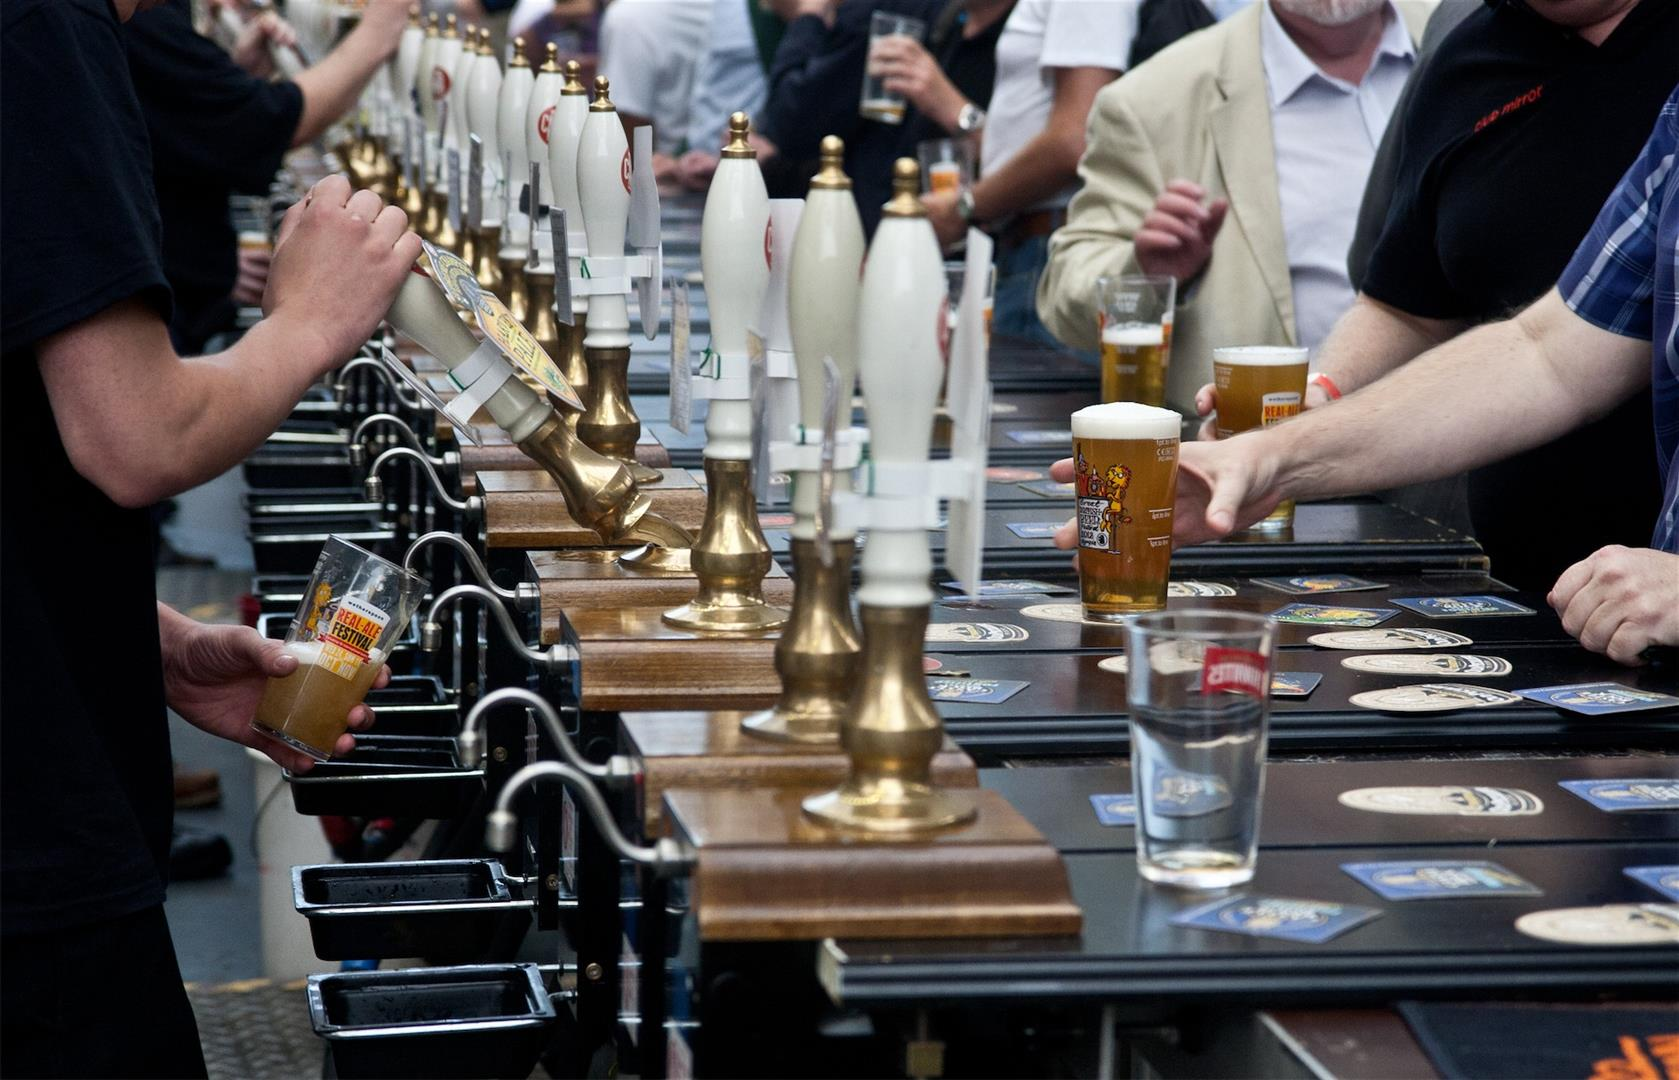 The Real Ale Connoisseurs' Guide to Great Boutique Beers